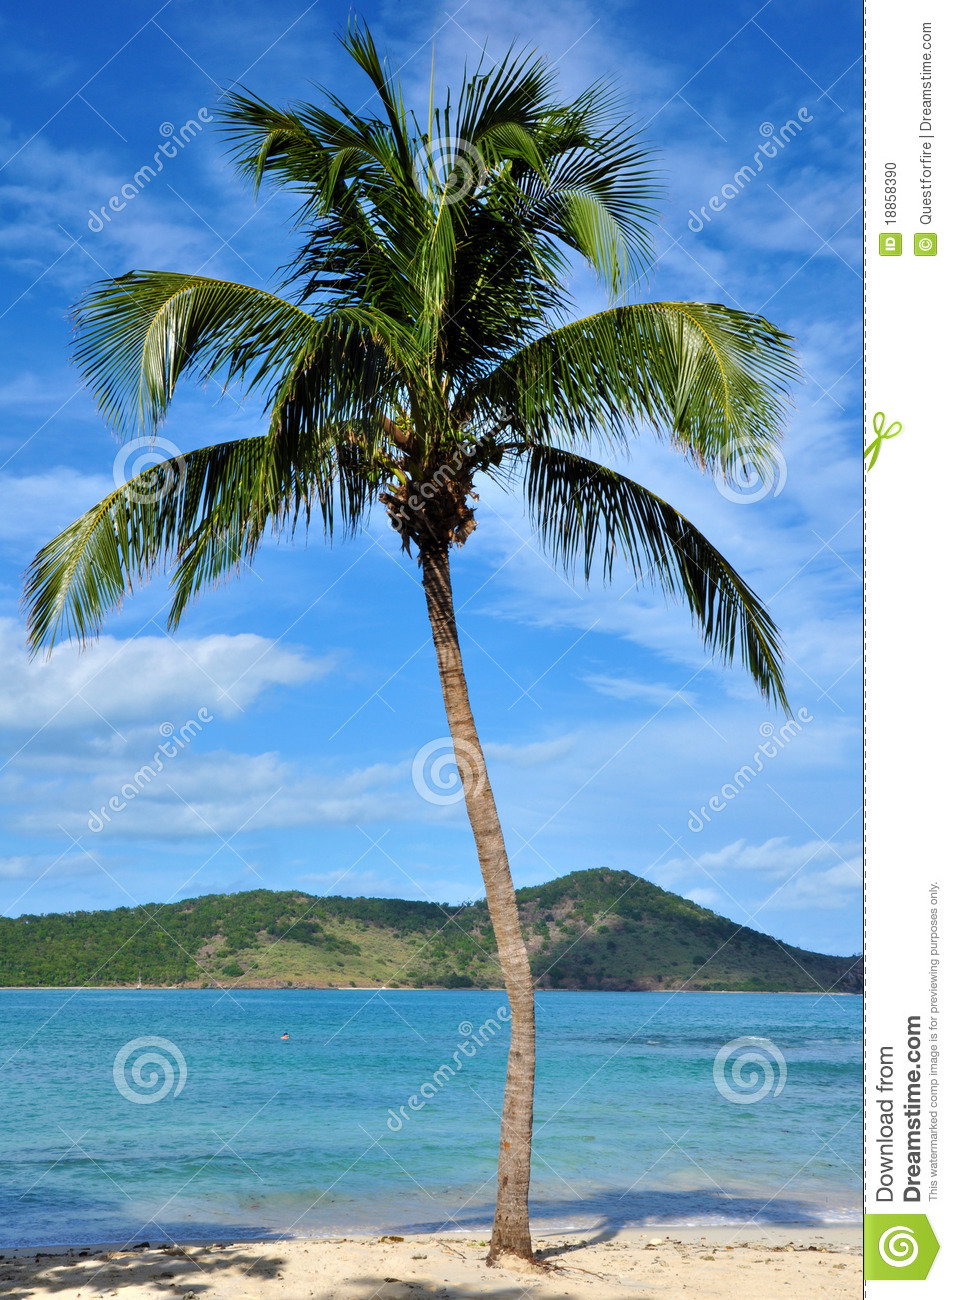 Palm Tree Stock Photo - Image: 18858390